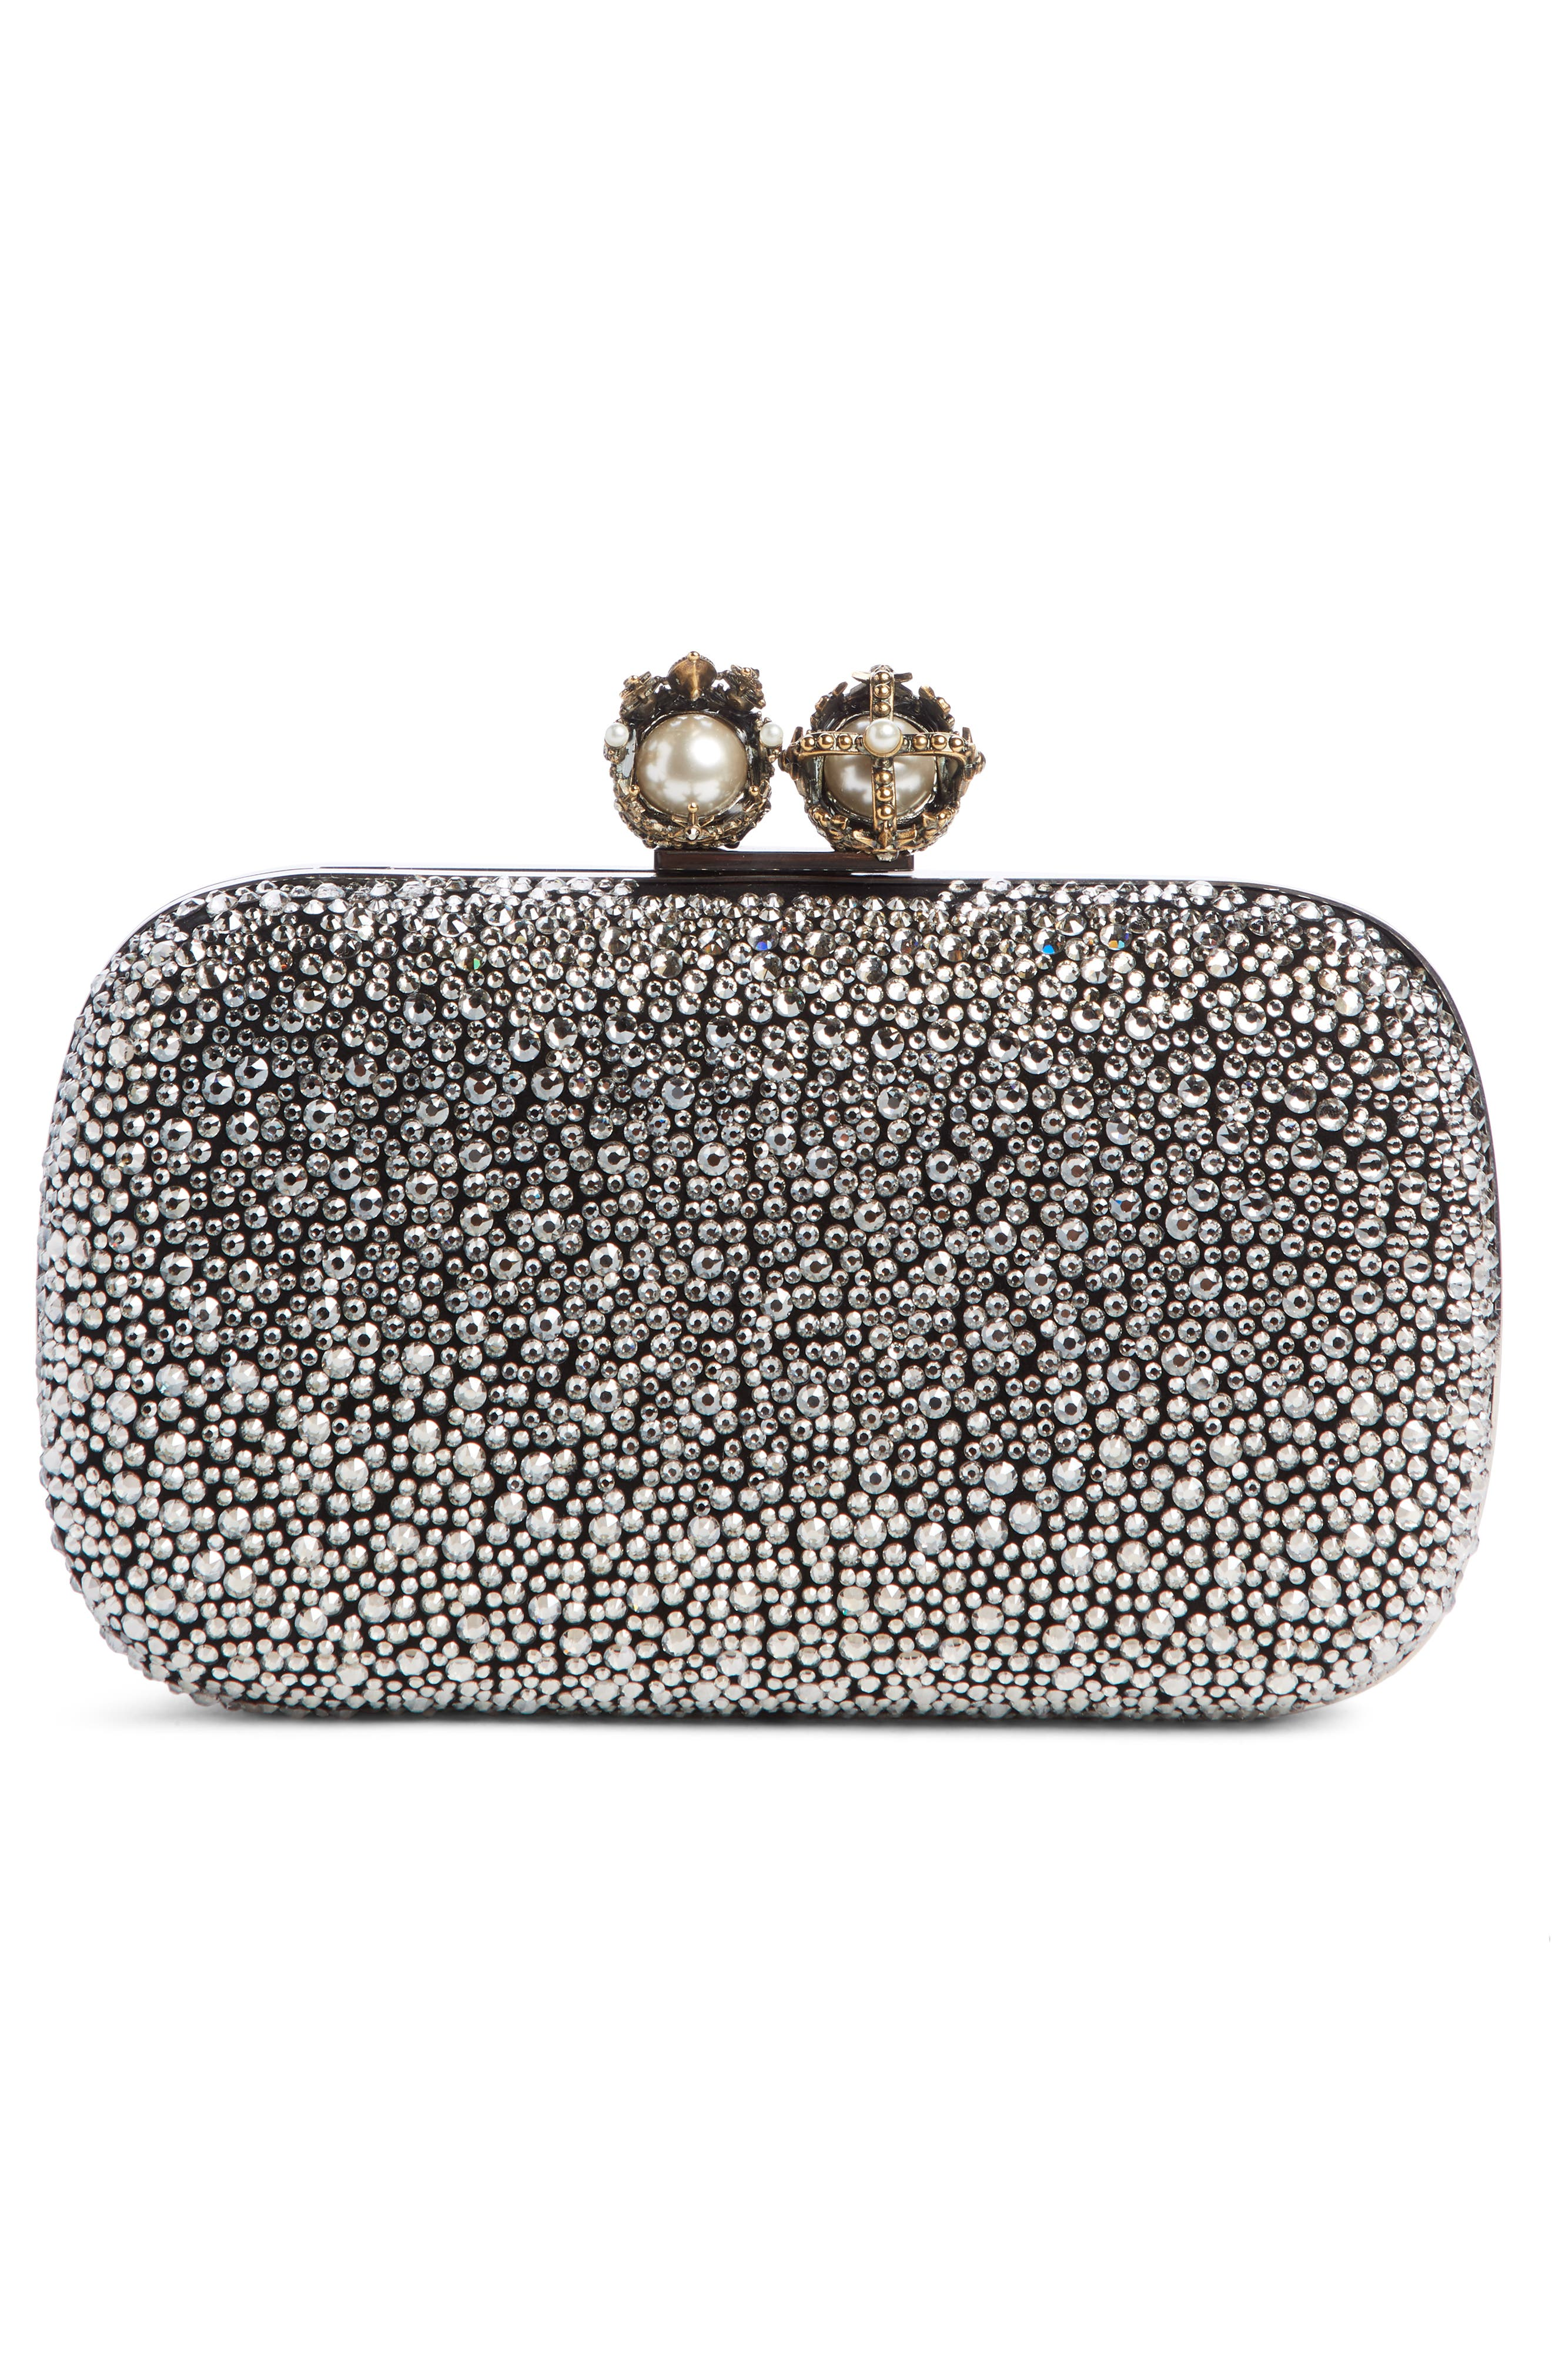 Crystal Embellished Queen & King Clutch,                             Alternate thumbnail 3, color,                             BLACK